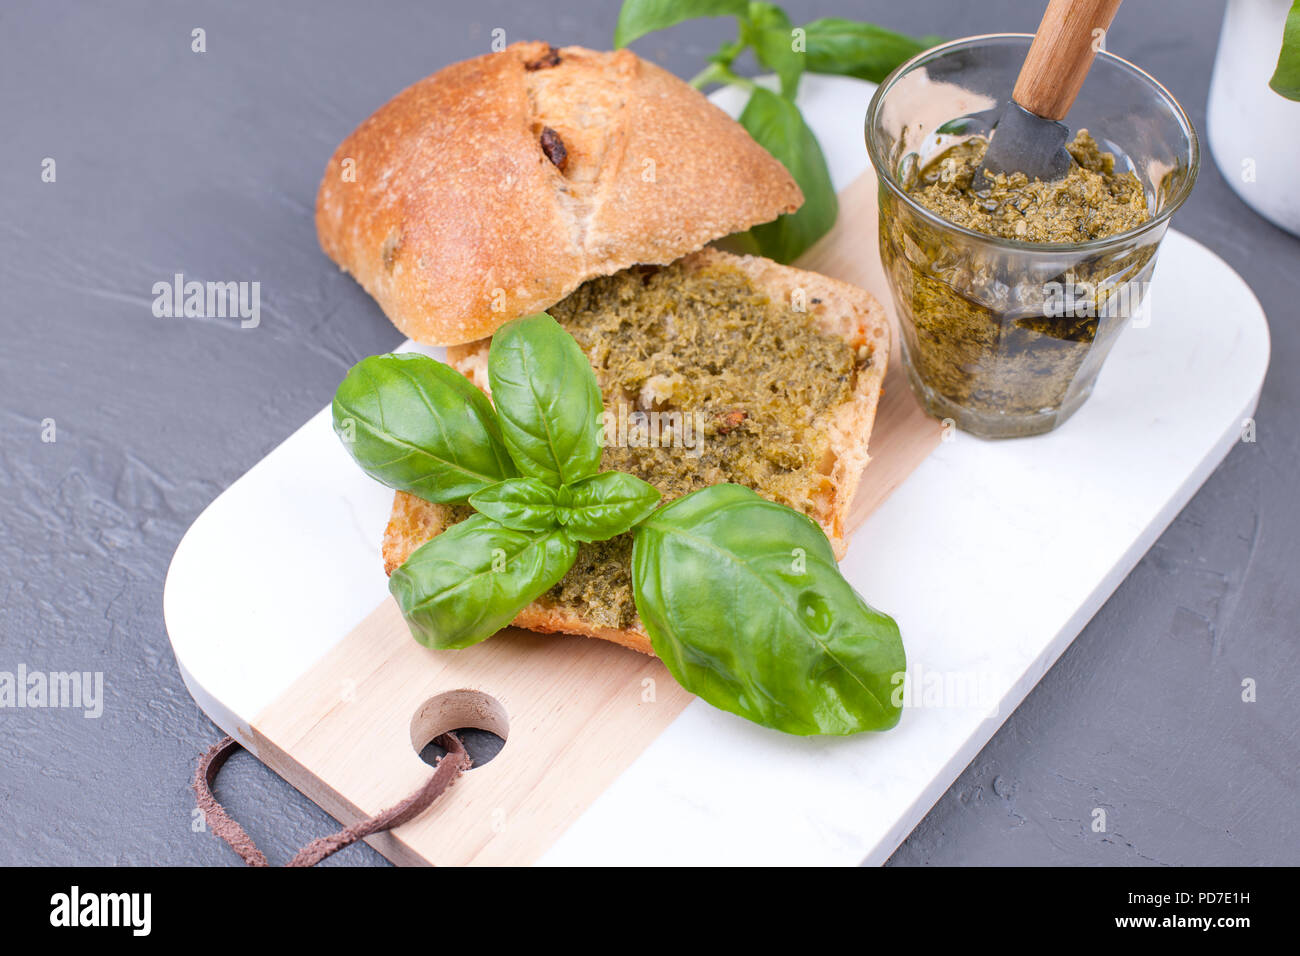 Fresh bread with pesto sauce and green basil on white board. Delicious healthy lunch. Free space for the text. Top view - Stock Image